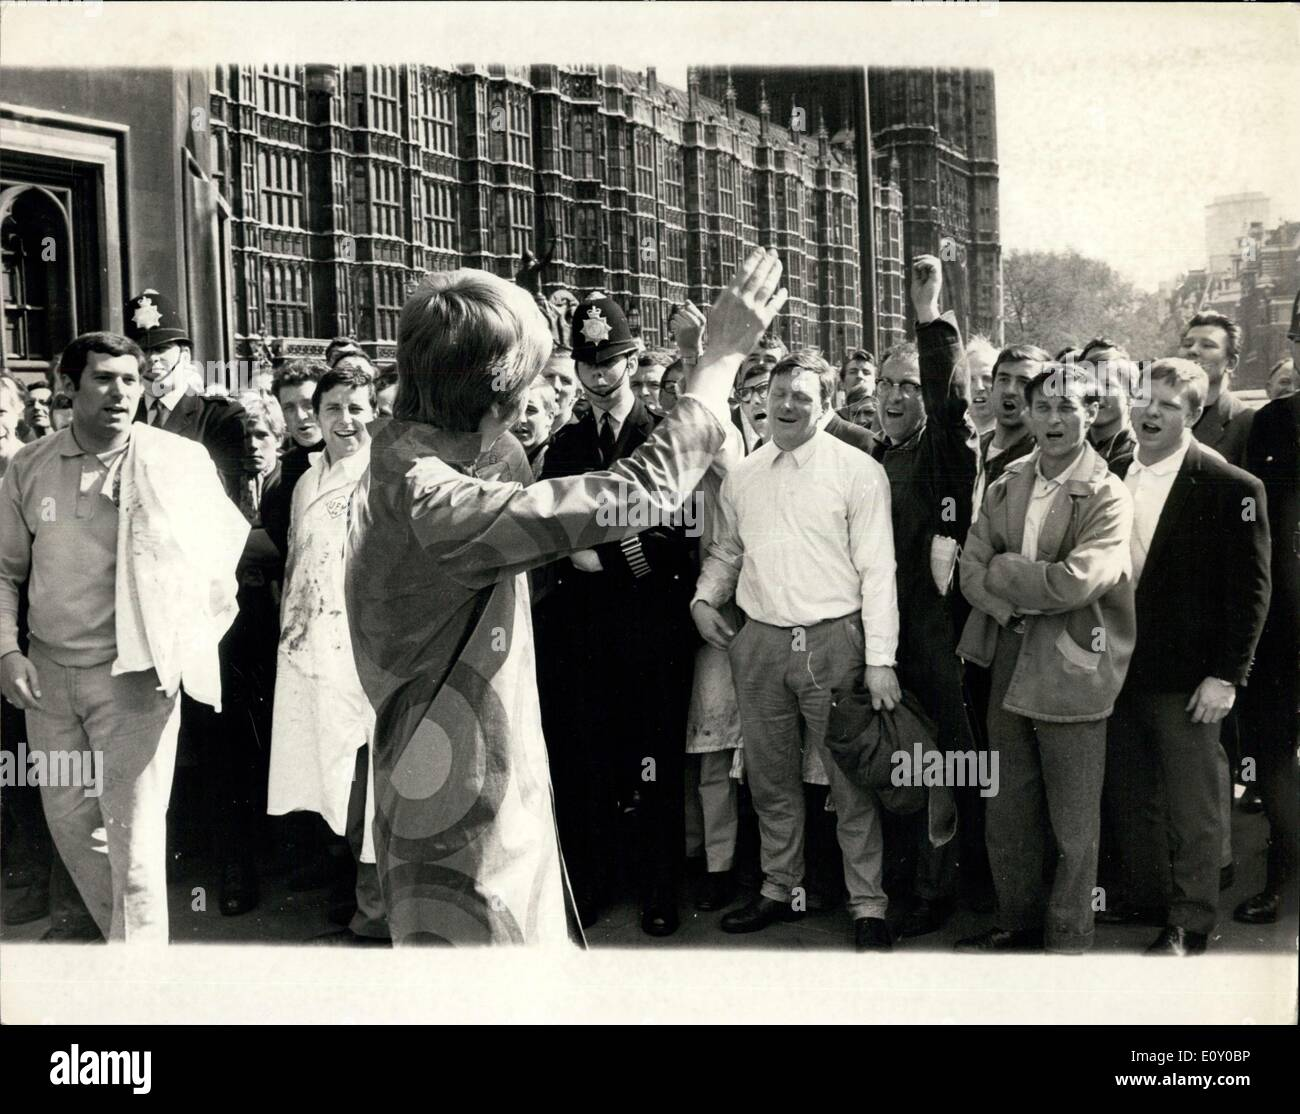 Apr. 24, 1968 - Smith-field Porters March to Westminster: About four Hundred porters from Smithfield meat market, today marched - Stock Image